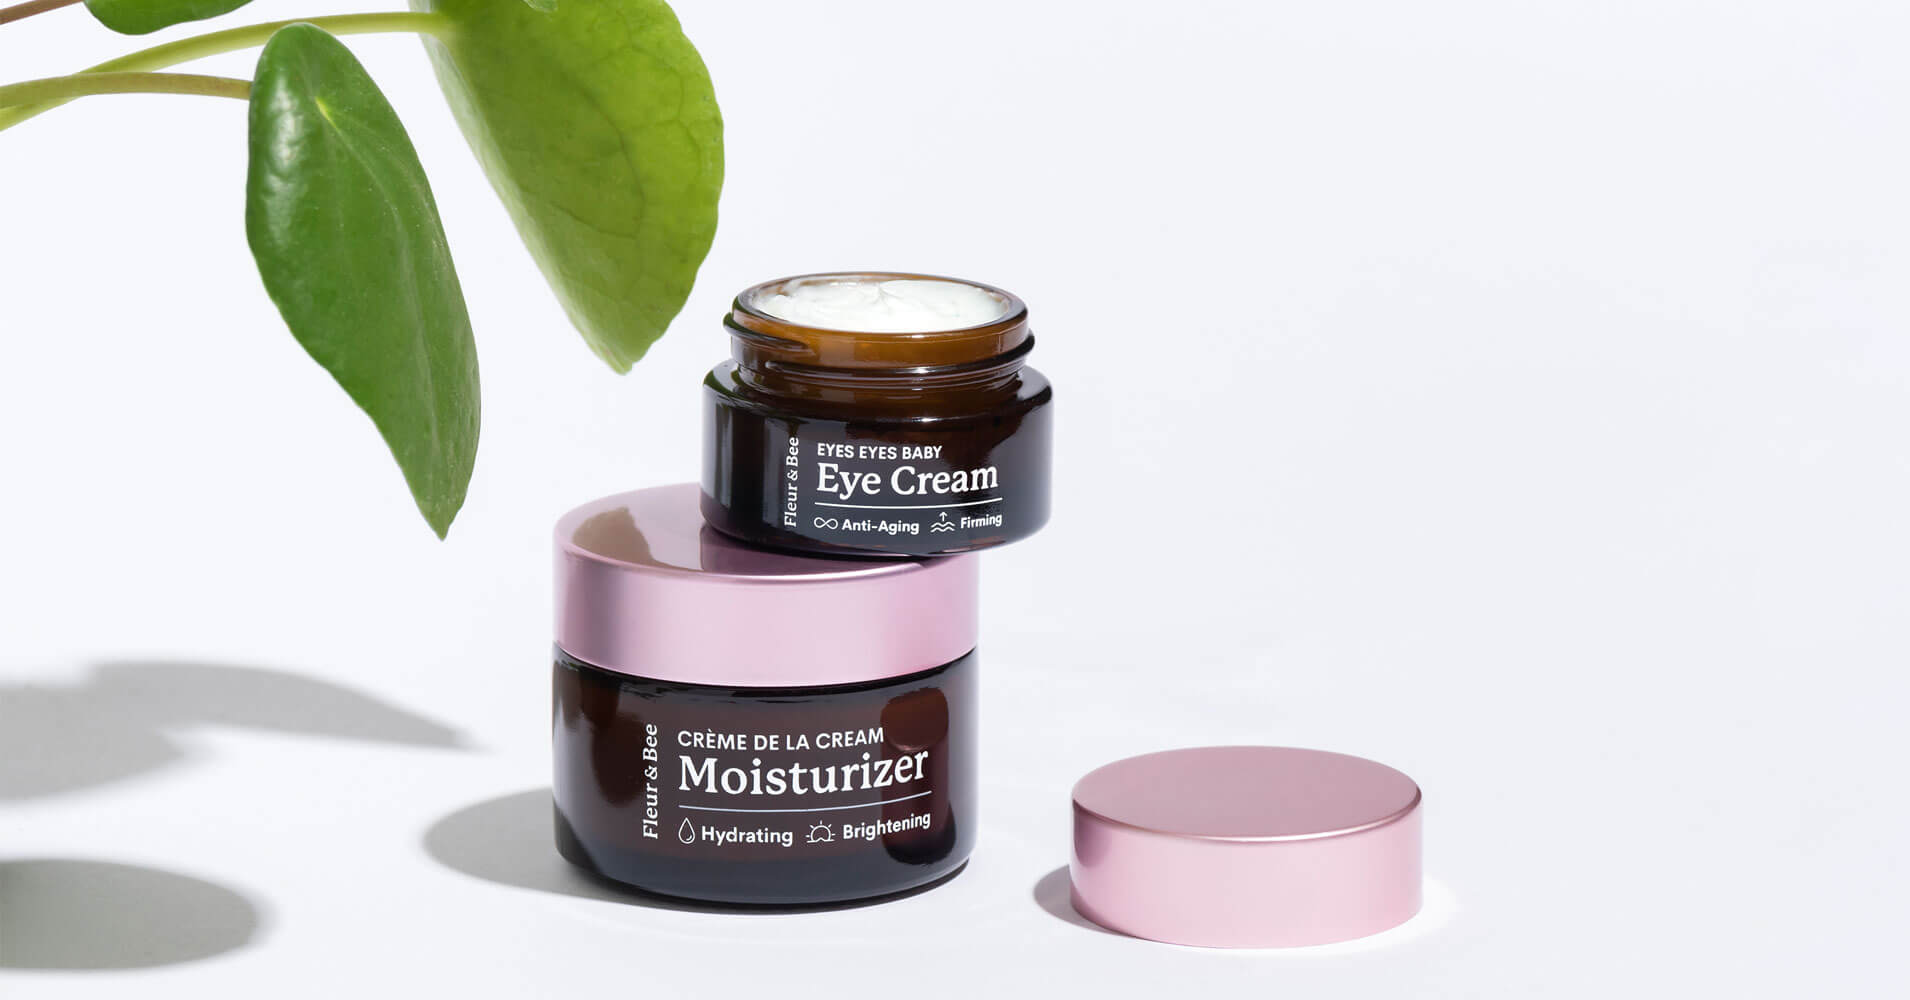 Cruelty-free skincare eye cream